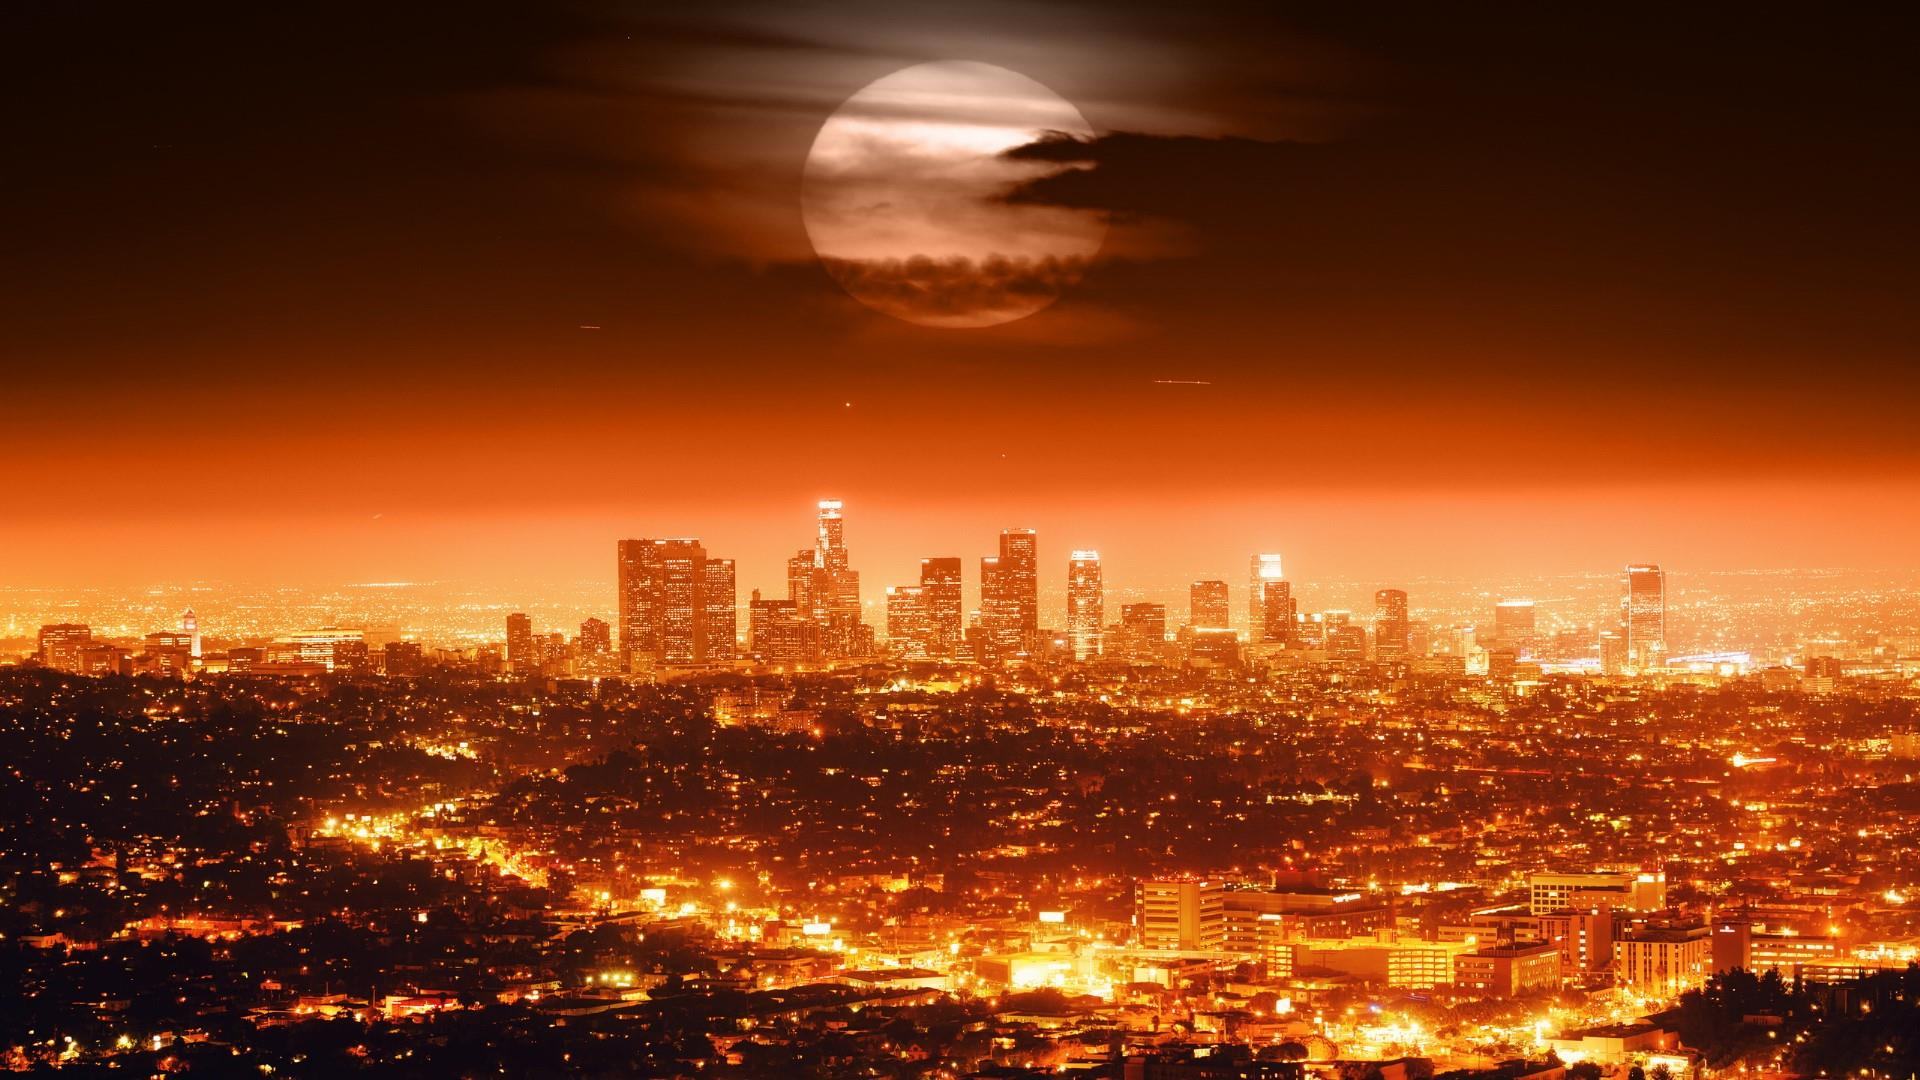 Los Angeles Wallpapers Top Free Los Angeles Backgrounds Wallpaperaccess